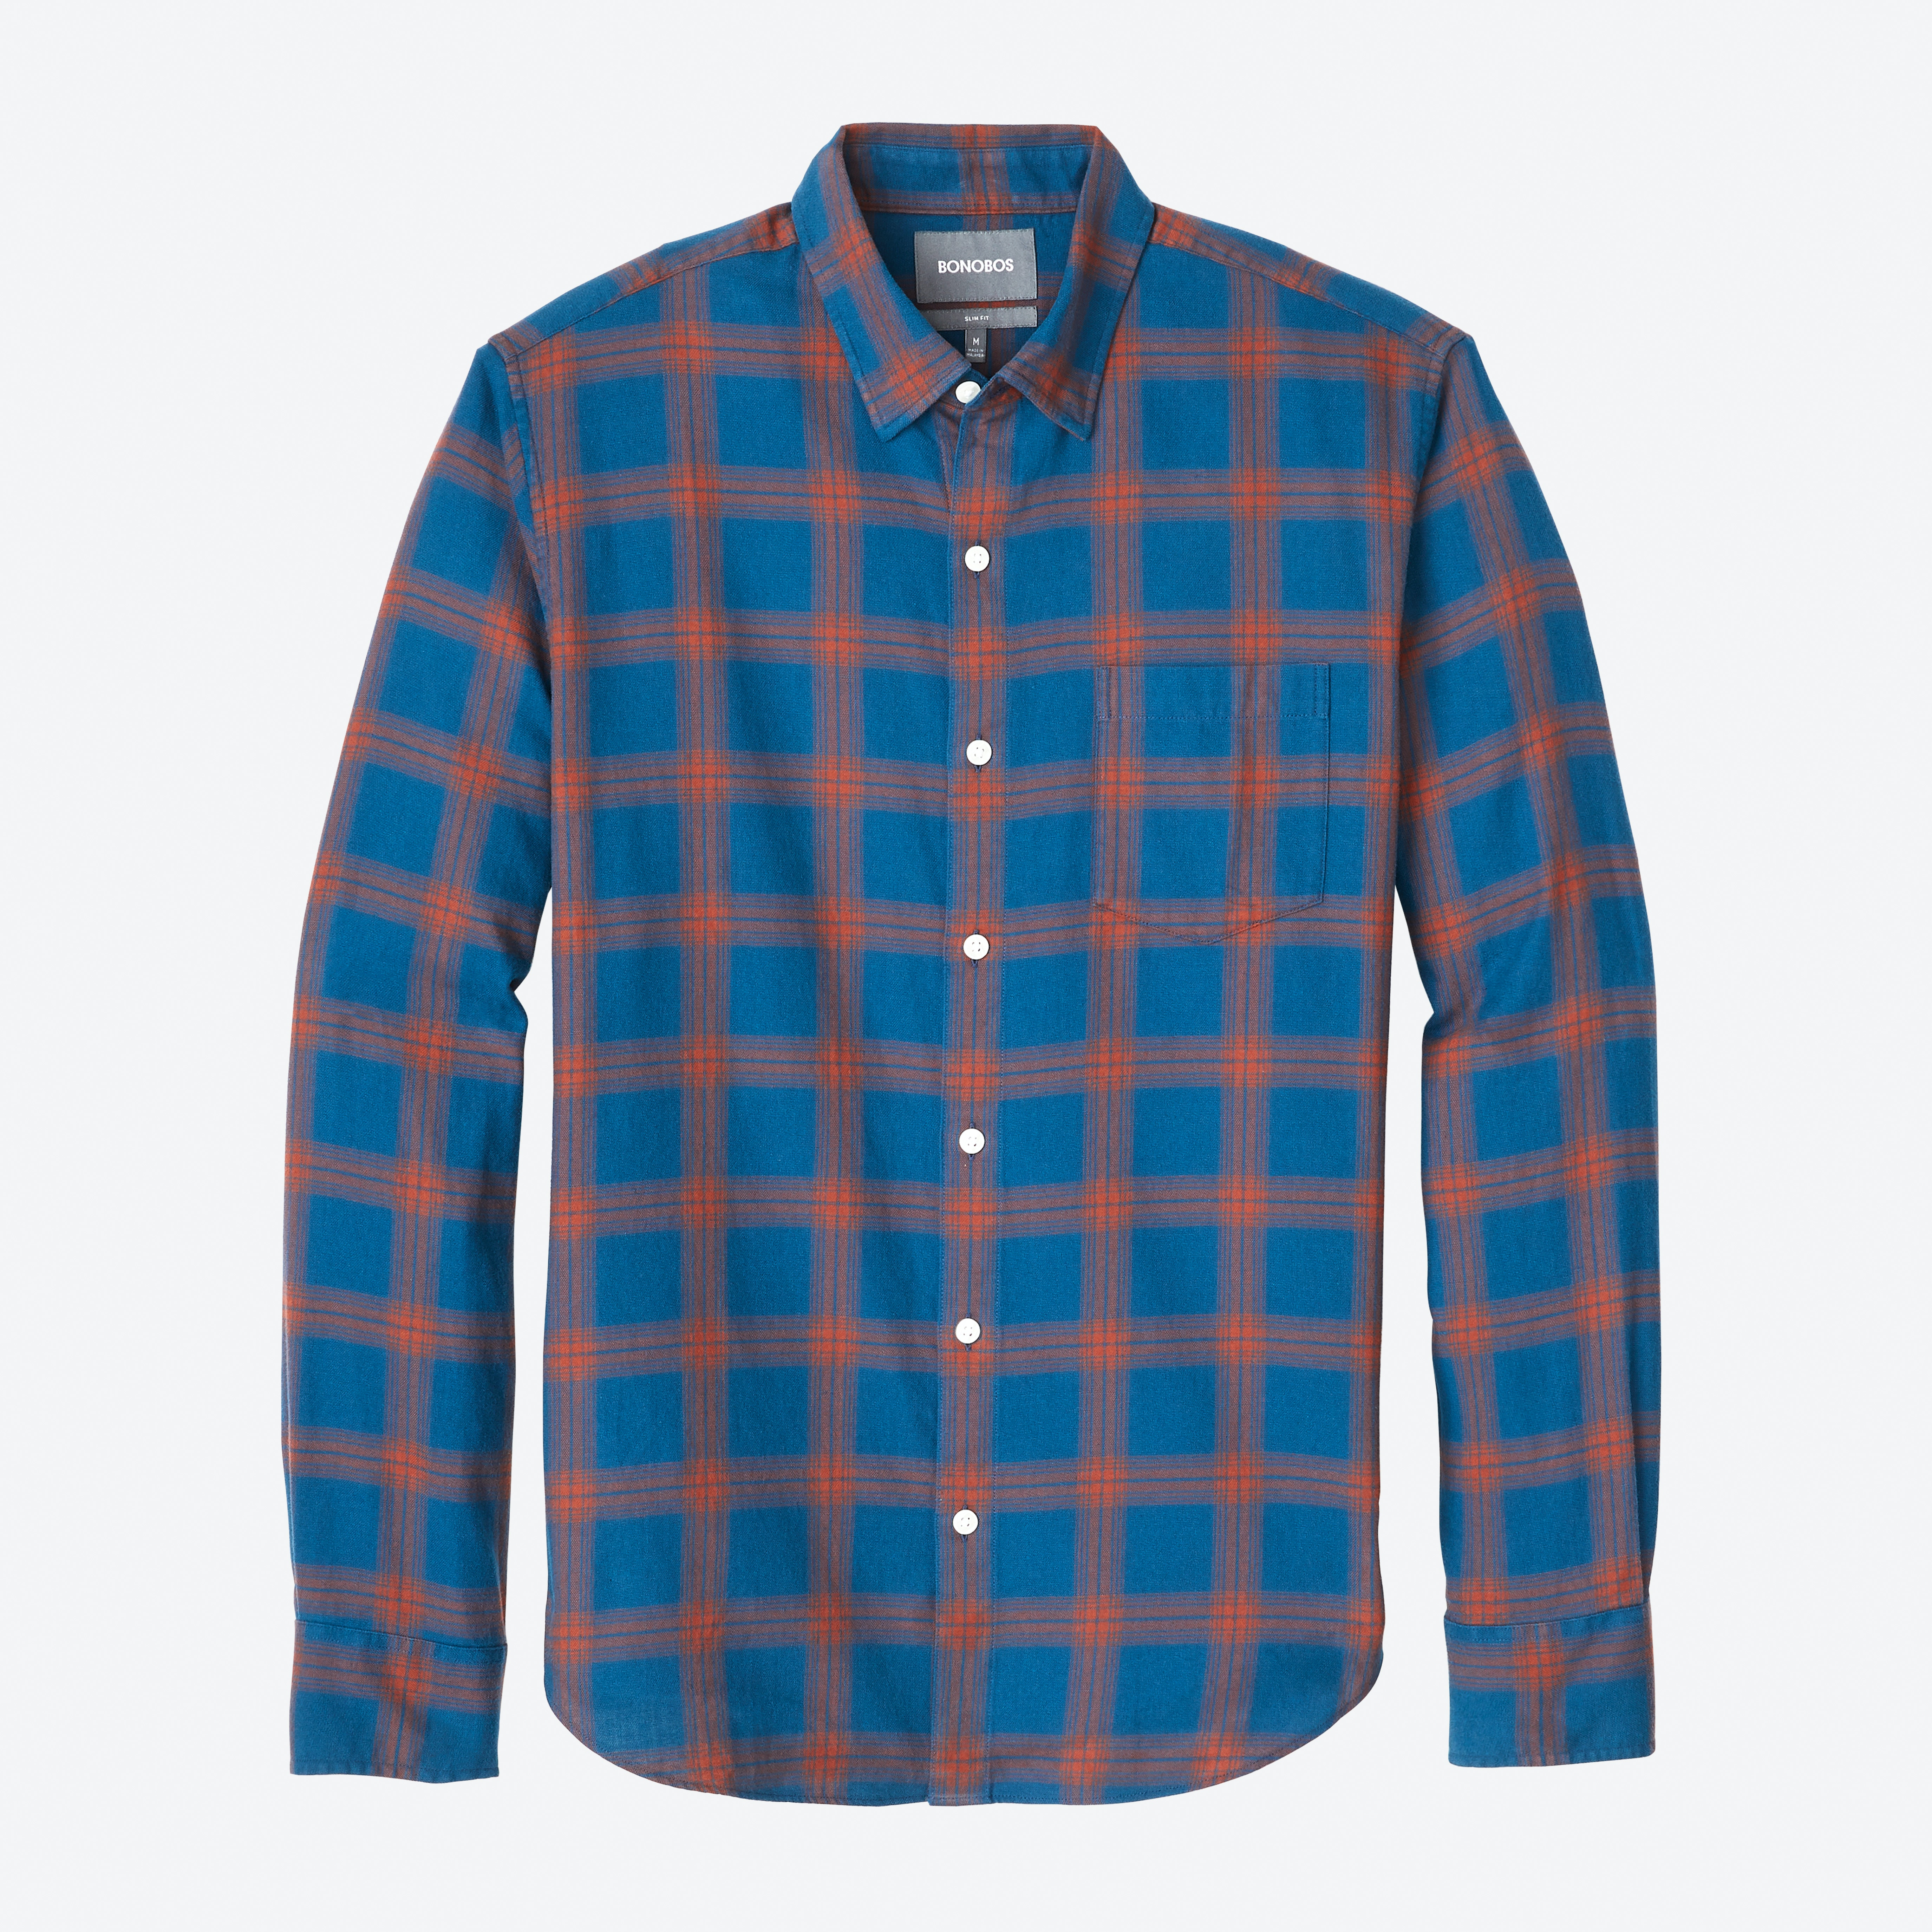 54e3df3c1ec22 Men s Casual Shirts in Every Fit